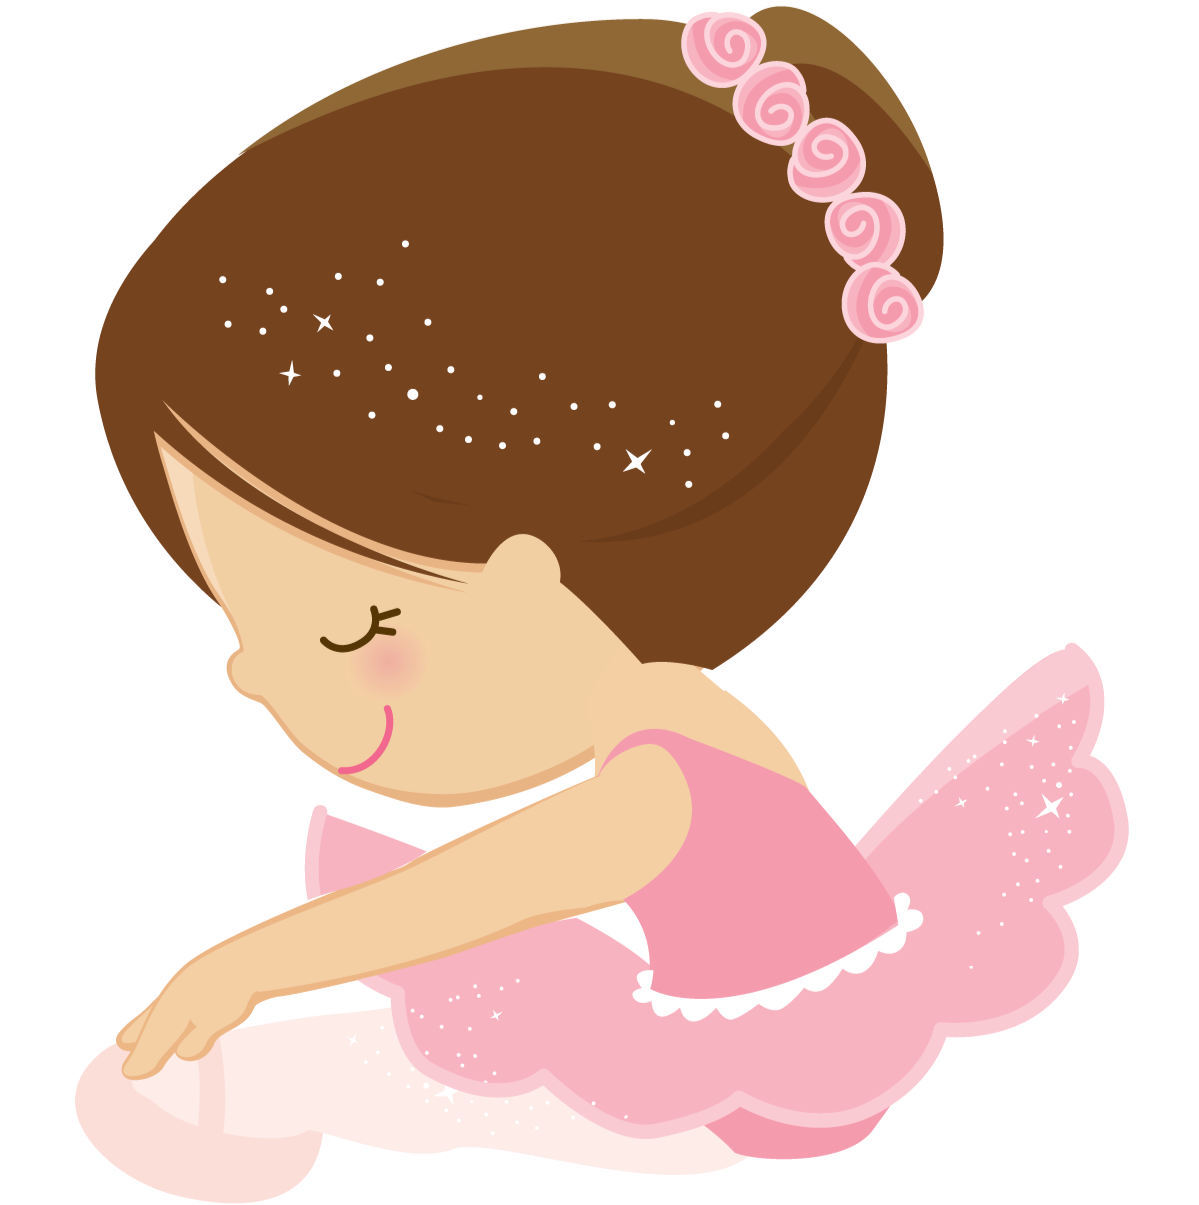 Turkey ballerina clipart clip freeuse stock 28+ Collection of Ballerina Tutu Clipart | High quality, free ... clip freeuse stock